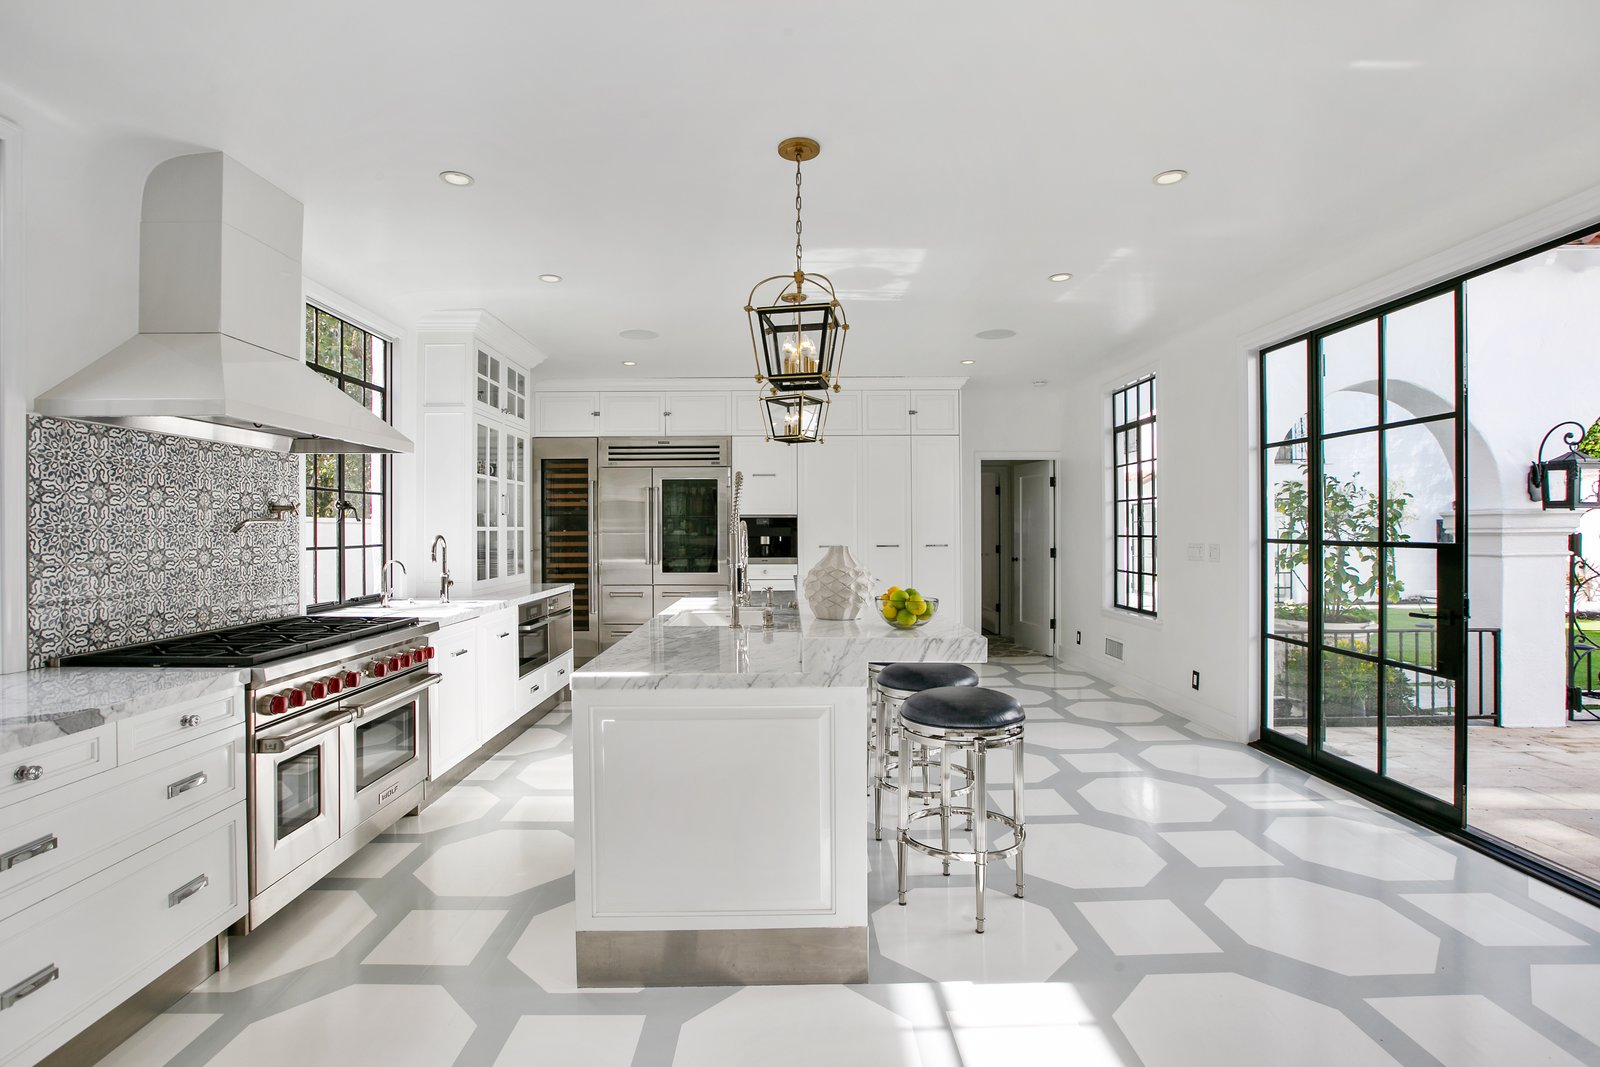 Kitchen, Vinyl, White, Ceramic Tile, Range, Drop In, Mosaic Tile, Granite, Refrigerator, Dishwasher, Ceiling, Recessed, and Range Hood The bright and airy kitchen is comprised of Miele and Sub-Zero appliances.  Kitchen Vinyl Dishwasher Drop In Photos from Beck's Former Mediterranean-Style Retreat Lists For $8M